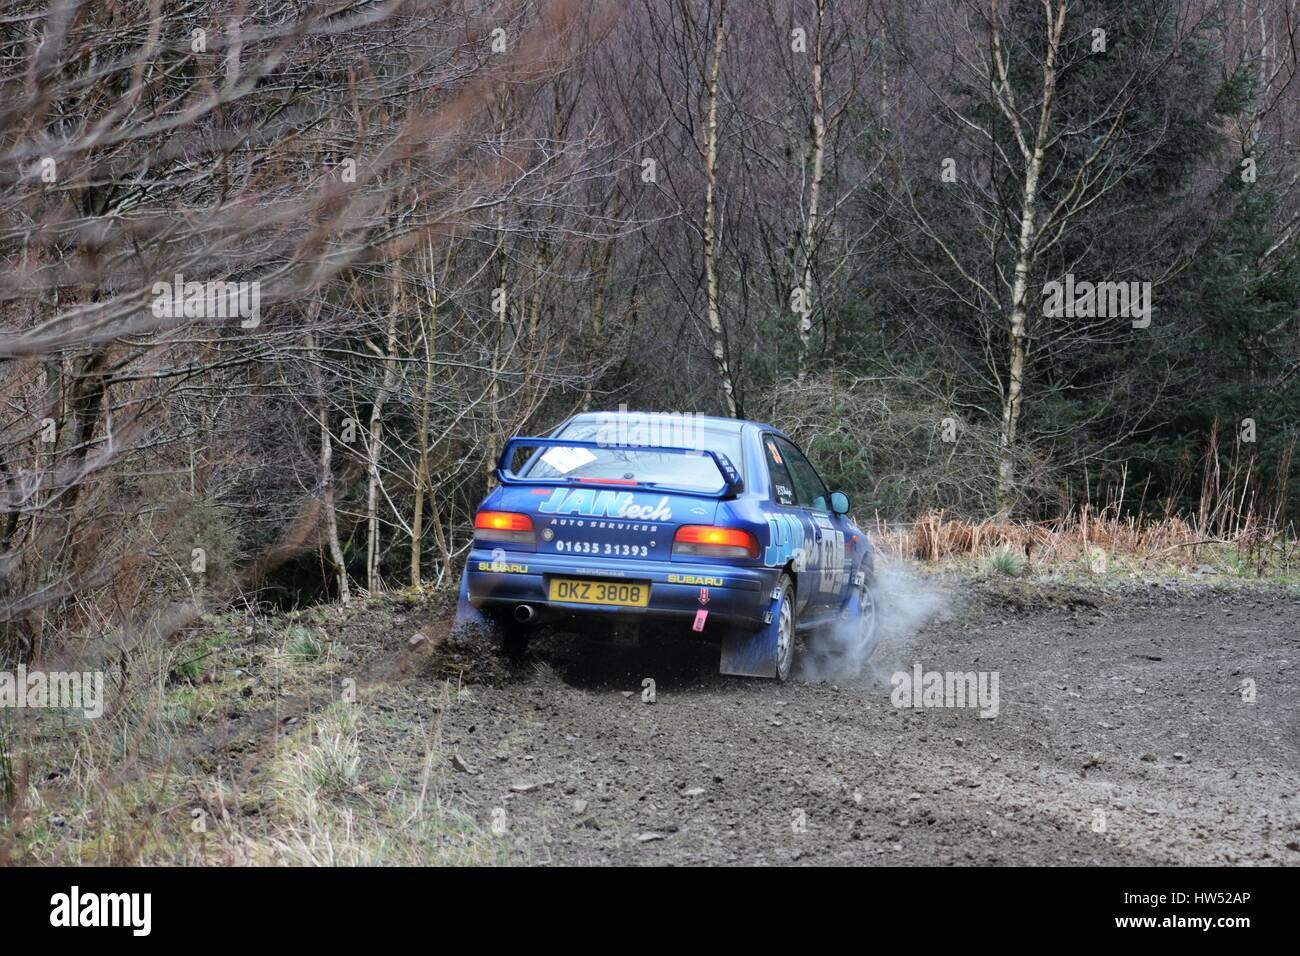 Rally cars on rally special stage - Stock Image